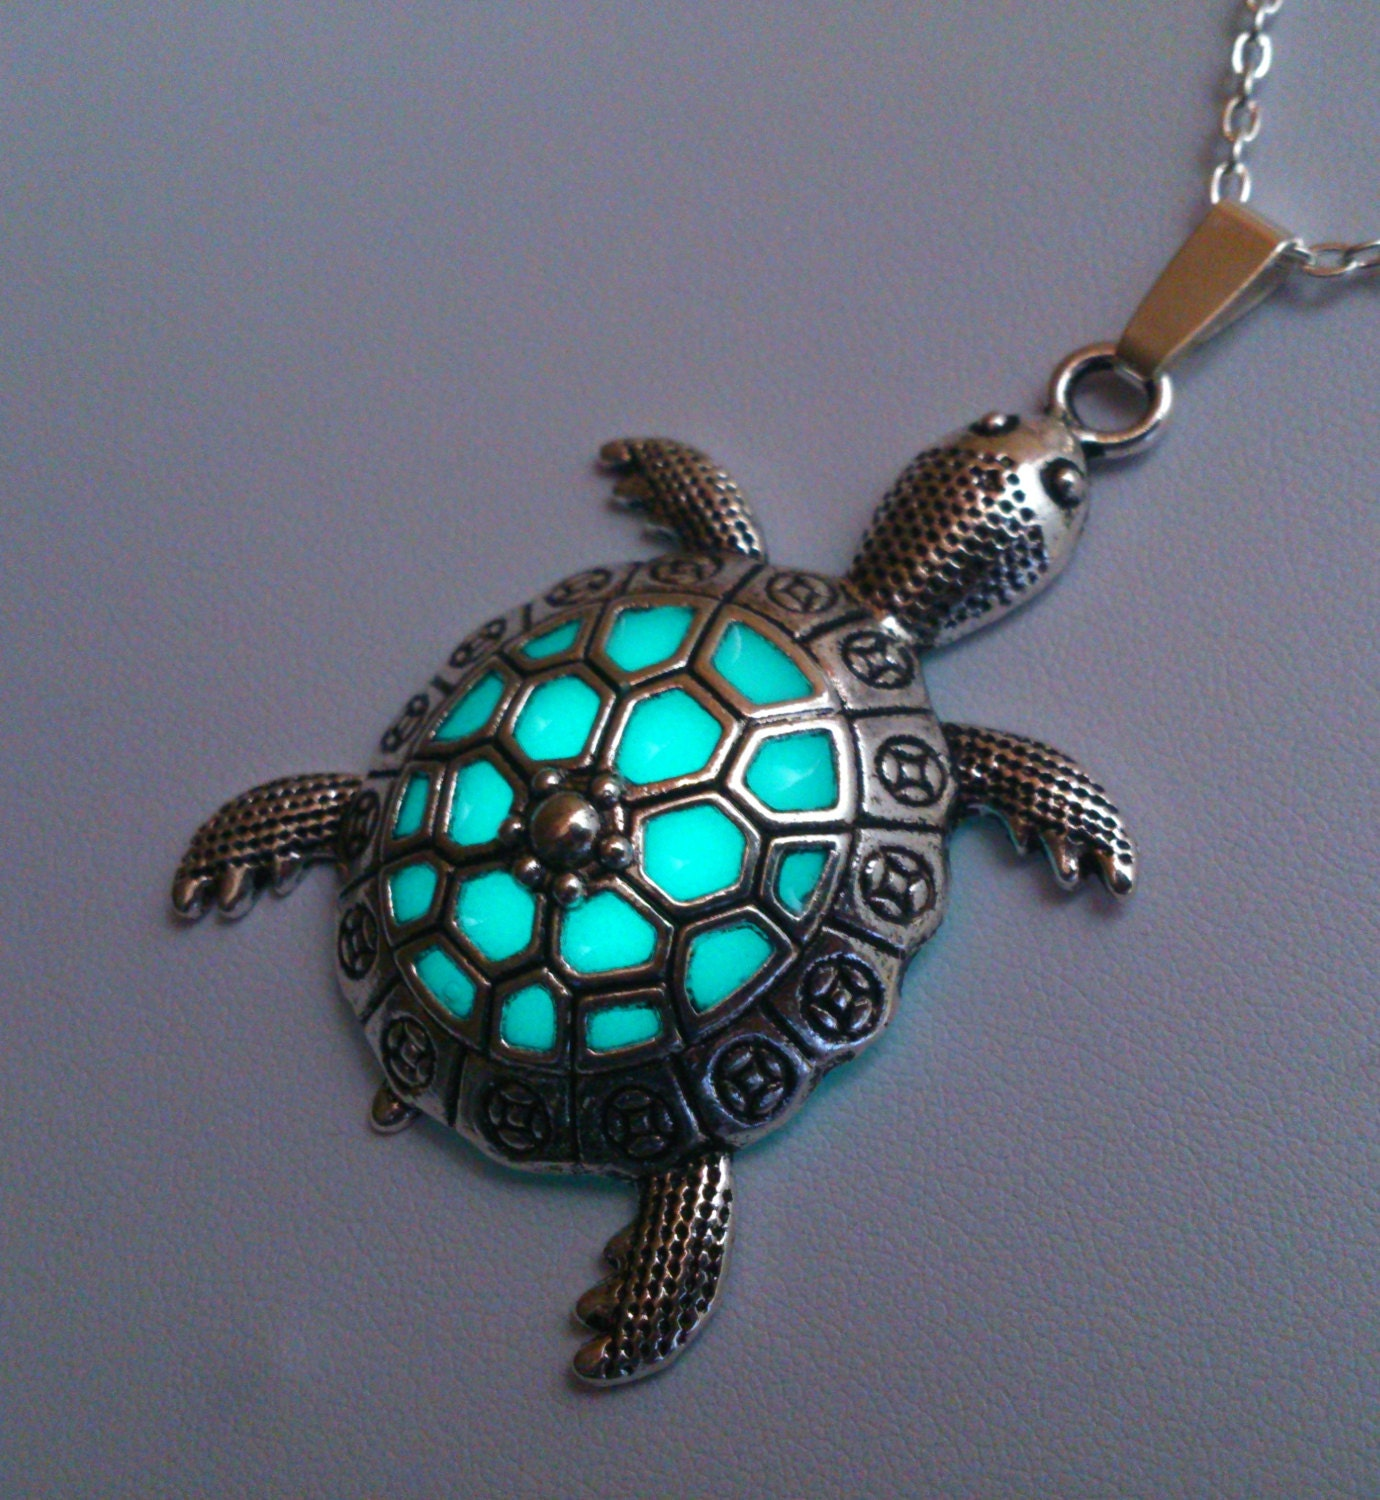 Charm Bracelet Jewelry: Sea Turtle Necklace Turtle Jewelry Sea Turtle Glowing